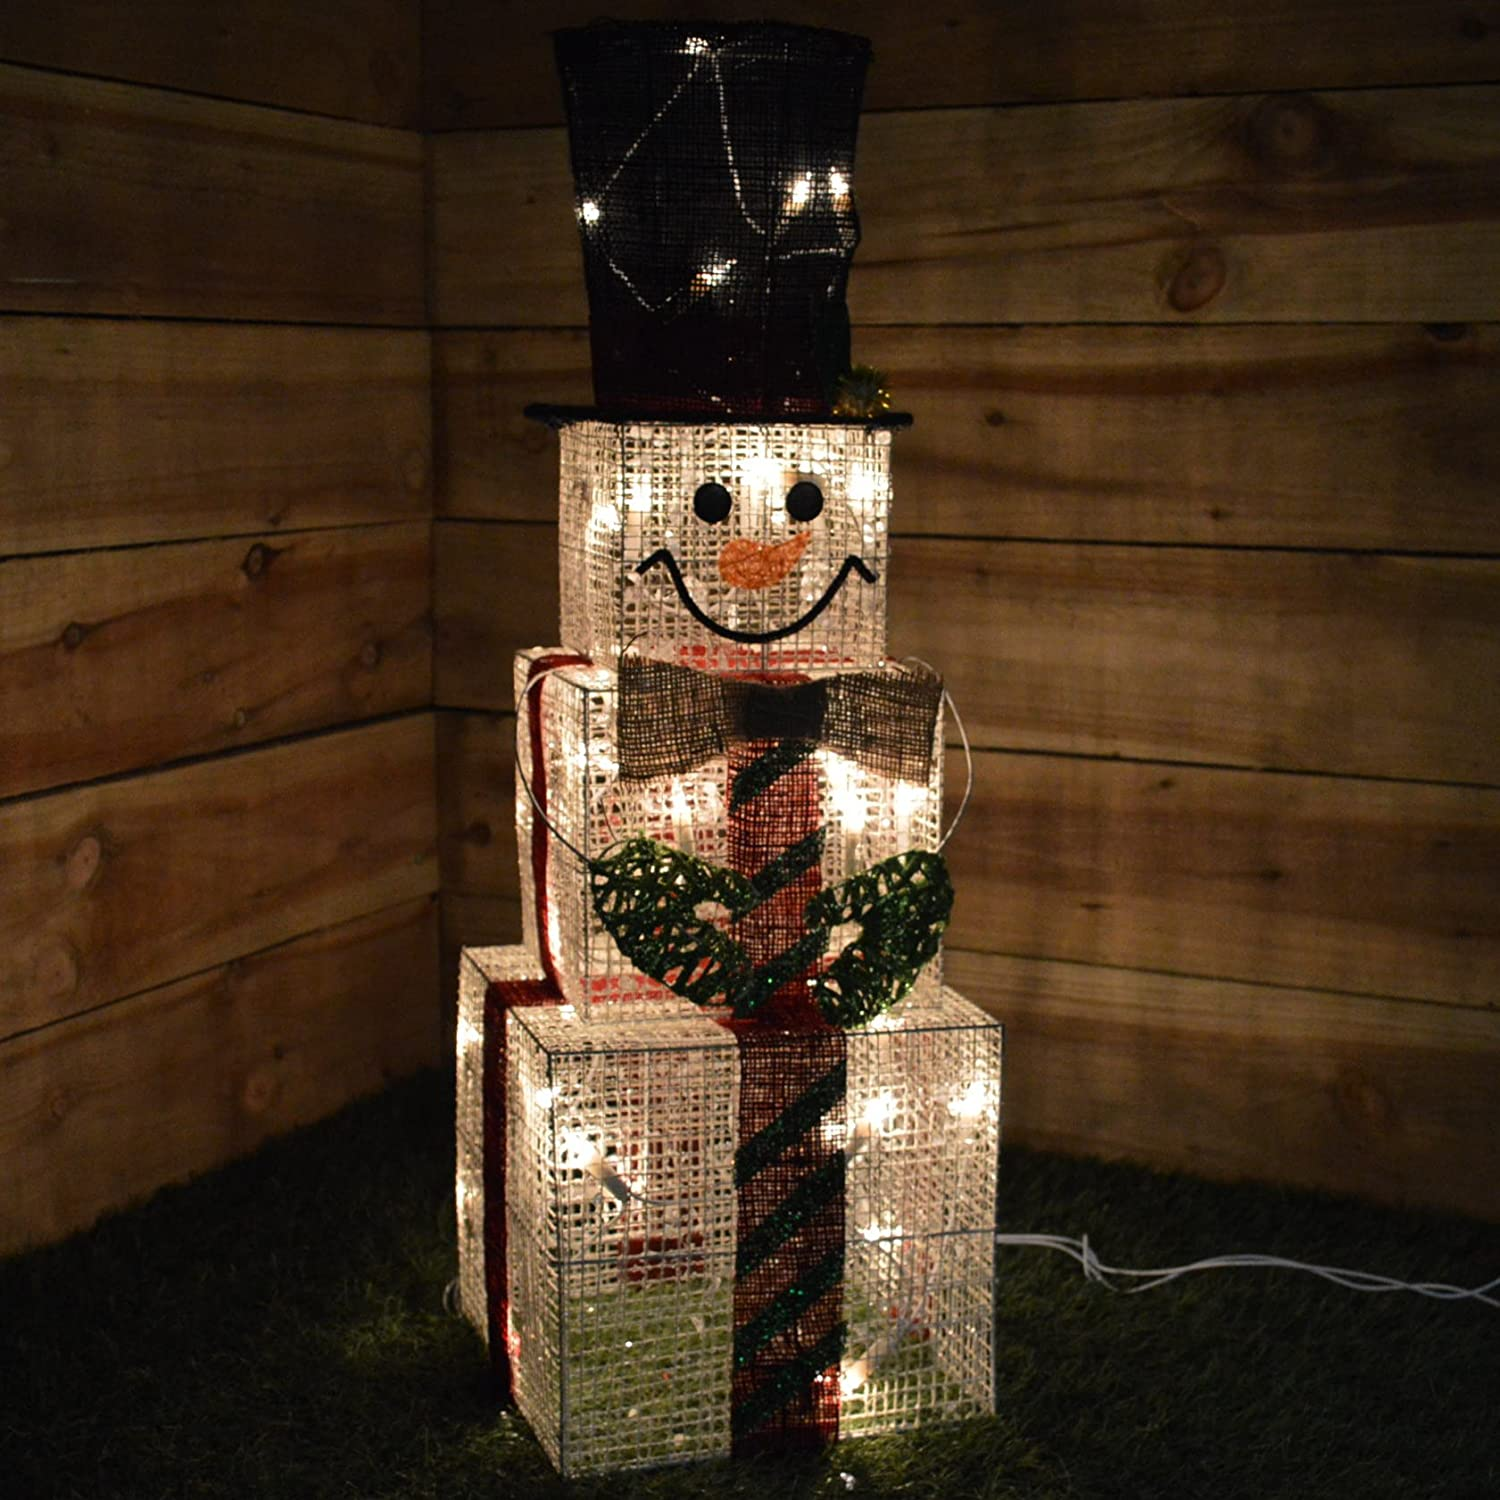 Kingfisher Indoor Square Snowman Christmas Light Figure Decoration - 75 Centimetre Tall Universal Markets Ltd